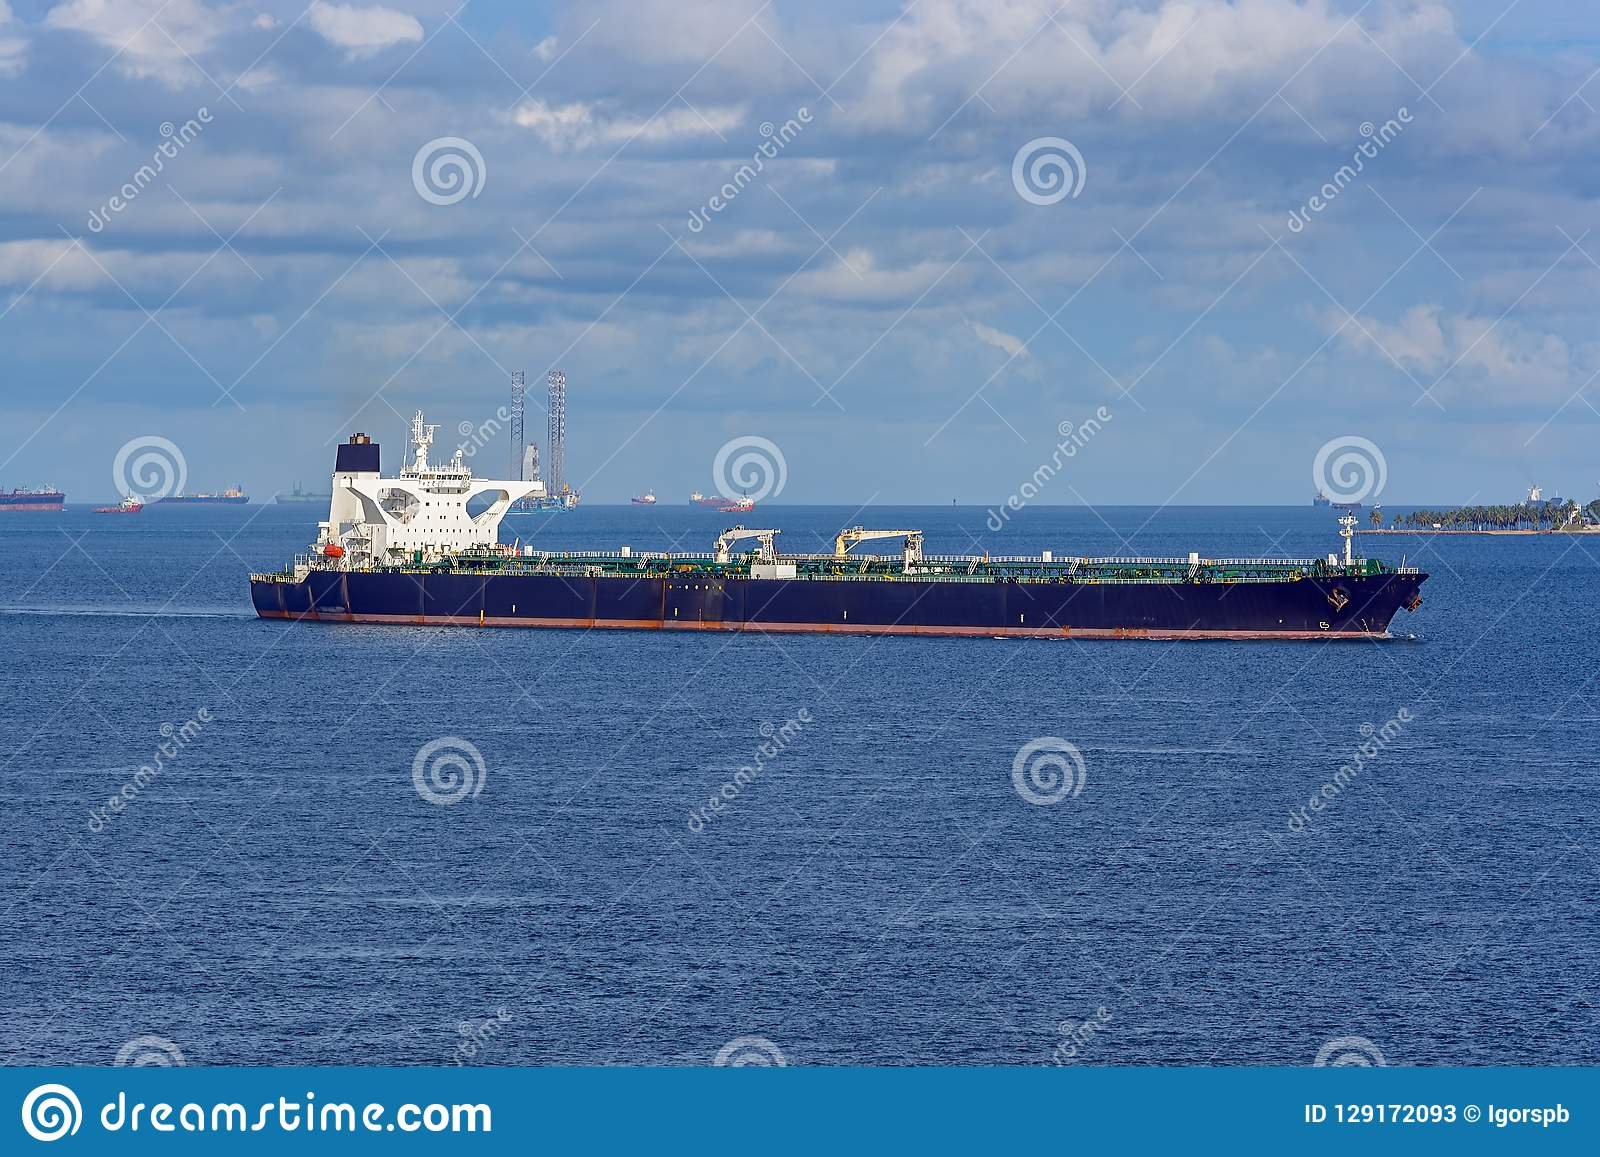 Crude Oil Tanker In Singapore Strait Stock Image - Image of